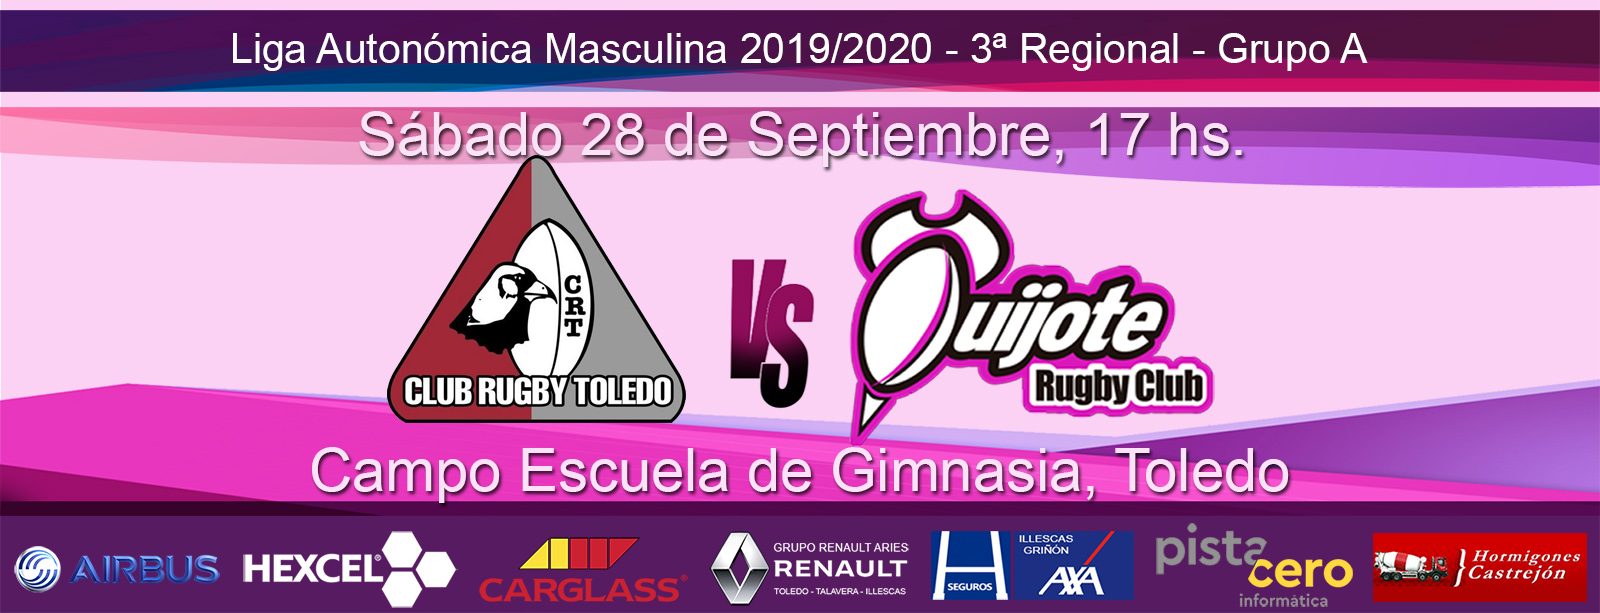 PDM Rugby Toledo vs Quijote Rugby Club (29-09-19)